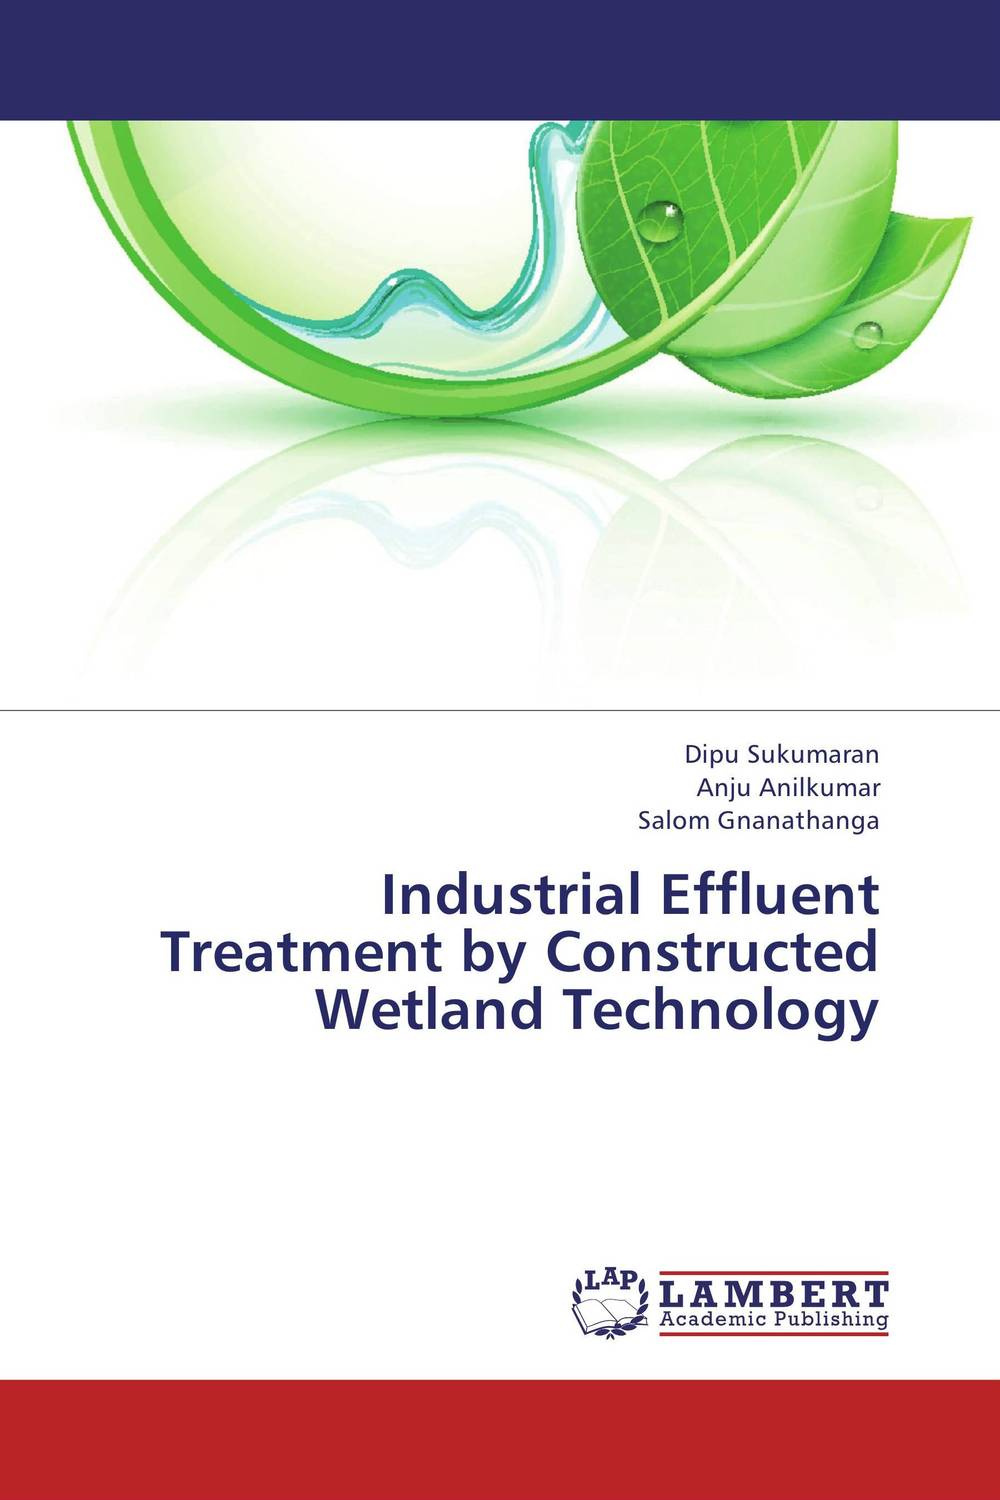 Industrial Effluent Treatment by Constructed Wetland Technology iso advanced infant arterial puncture arm model arterial puncture training simulator